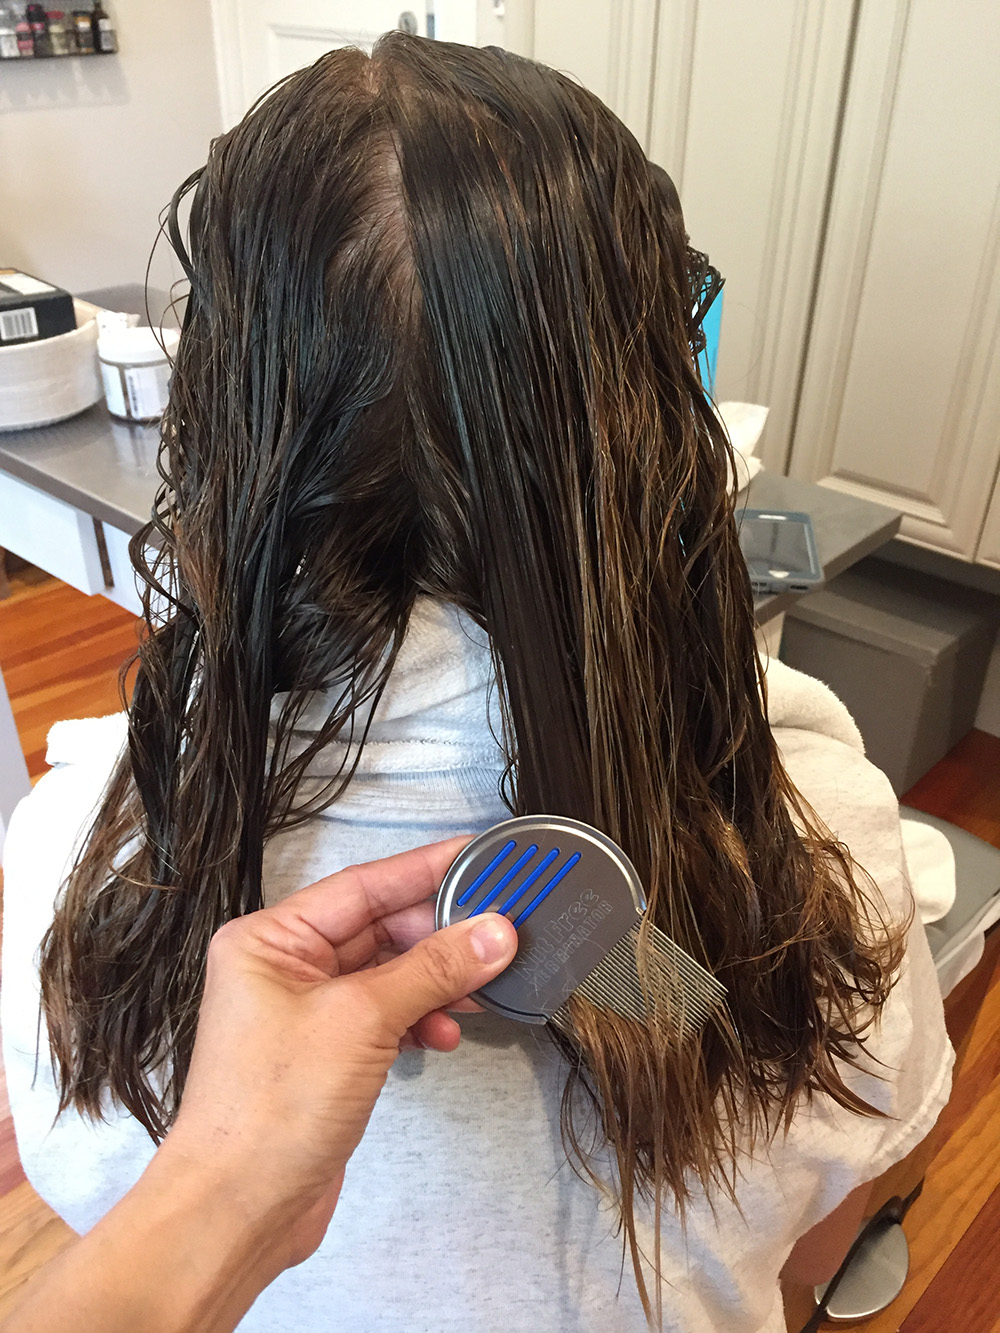 Lice Treatment in Boston, MA